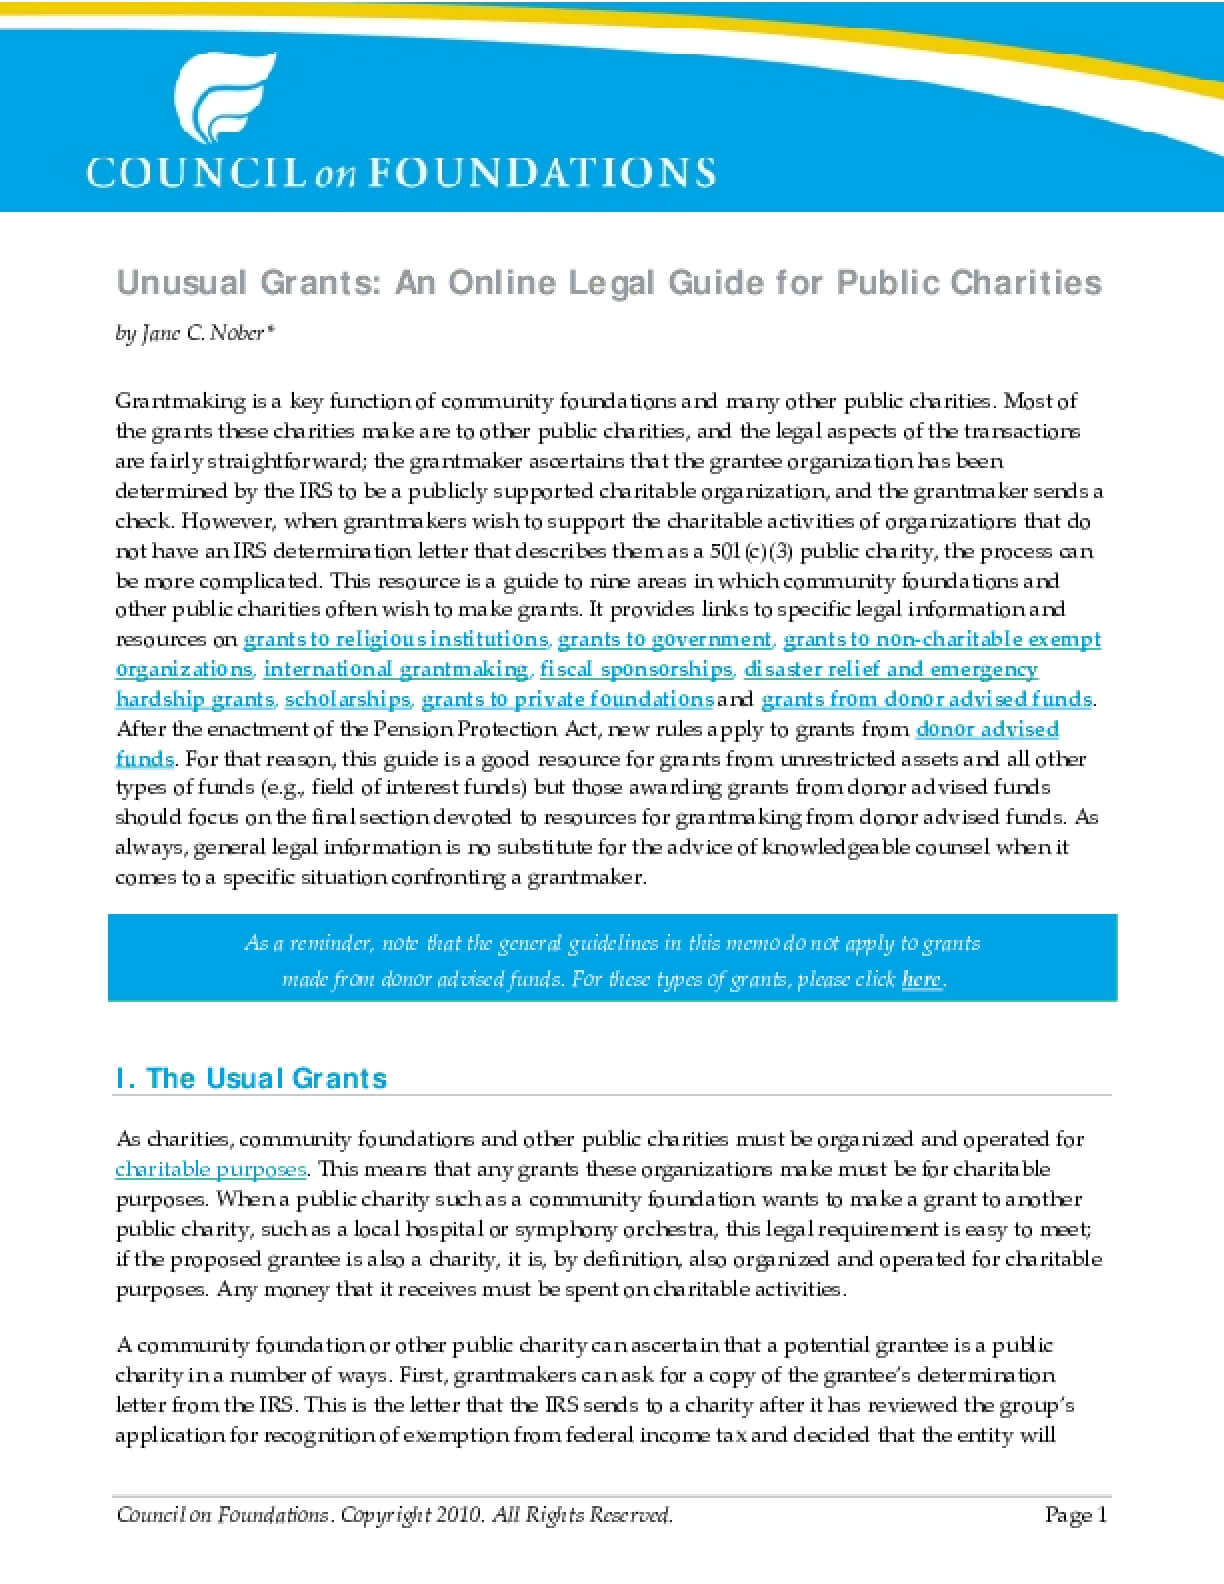 Unusual Grants: An Online Legal Guide for Public Charities